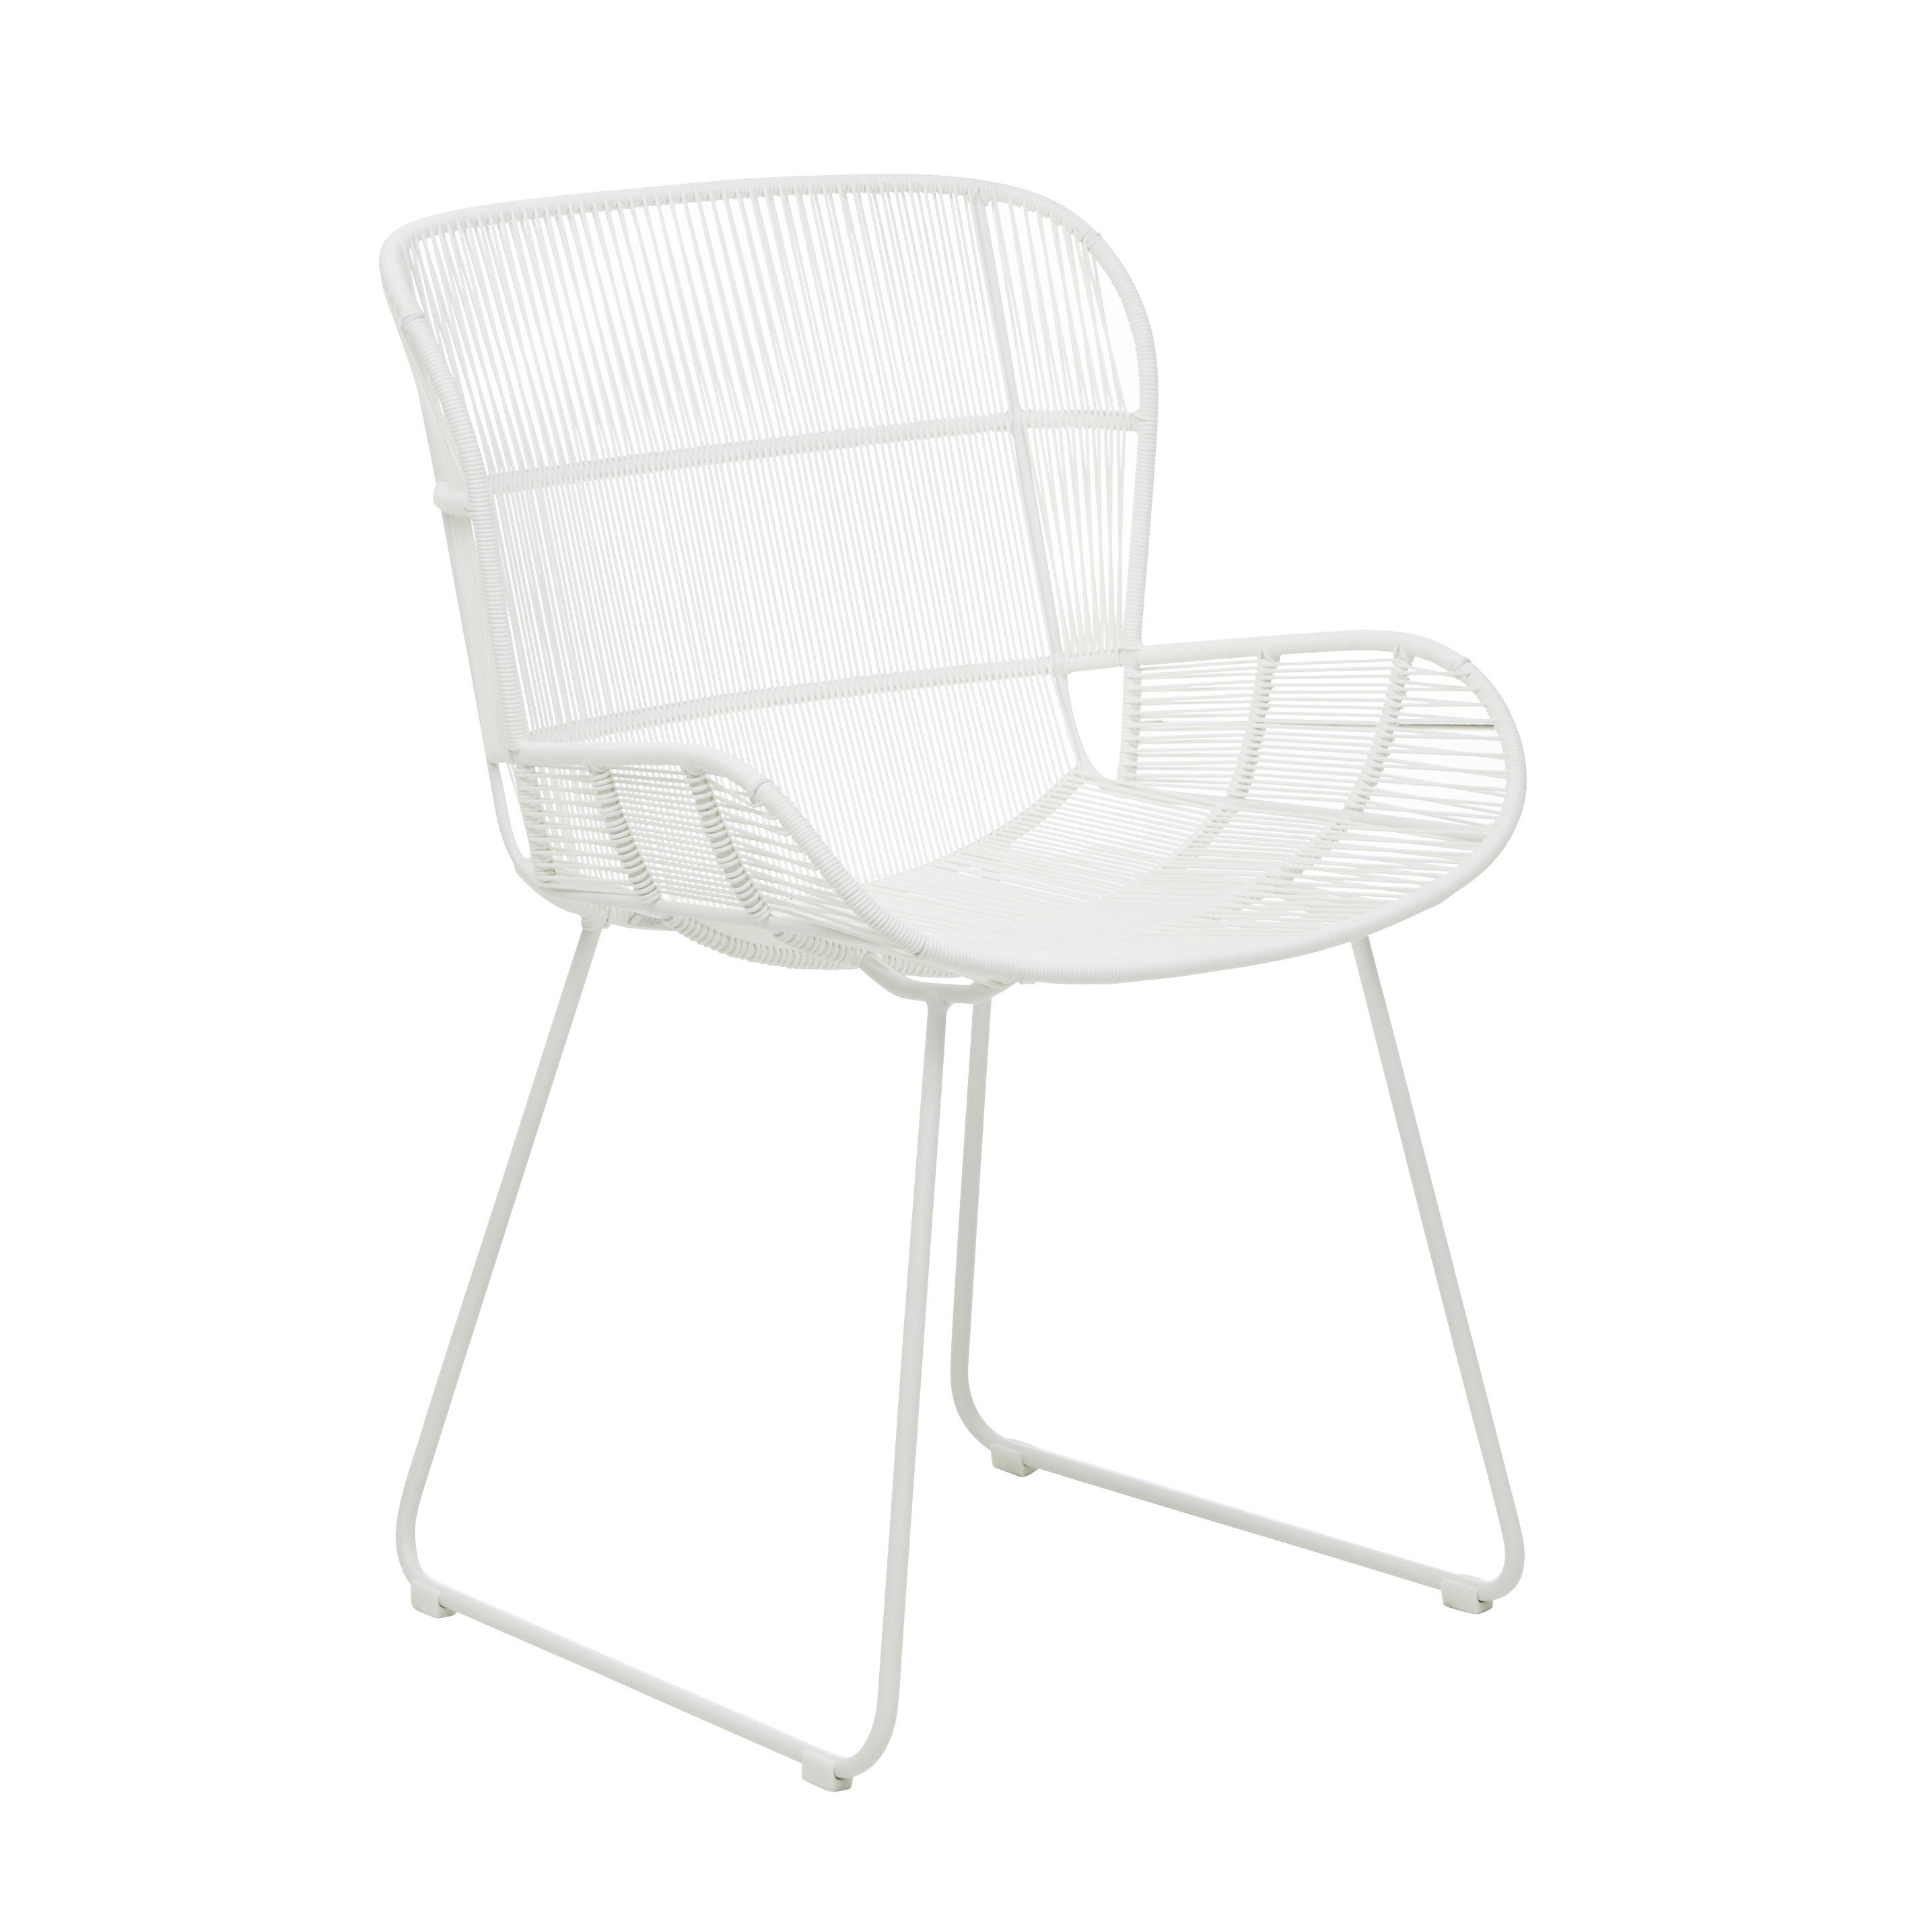 Furniture Hero-Images Dining-Chairs-Benches-and-Stools granada-butterfly-02